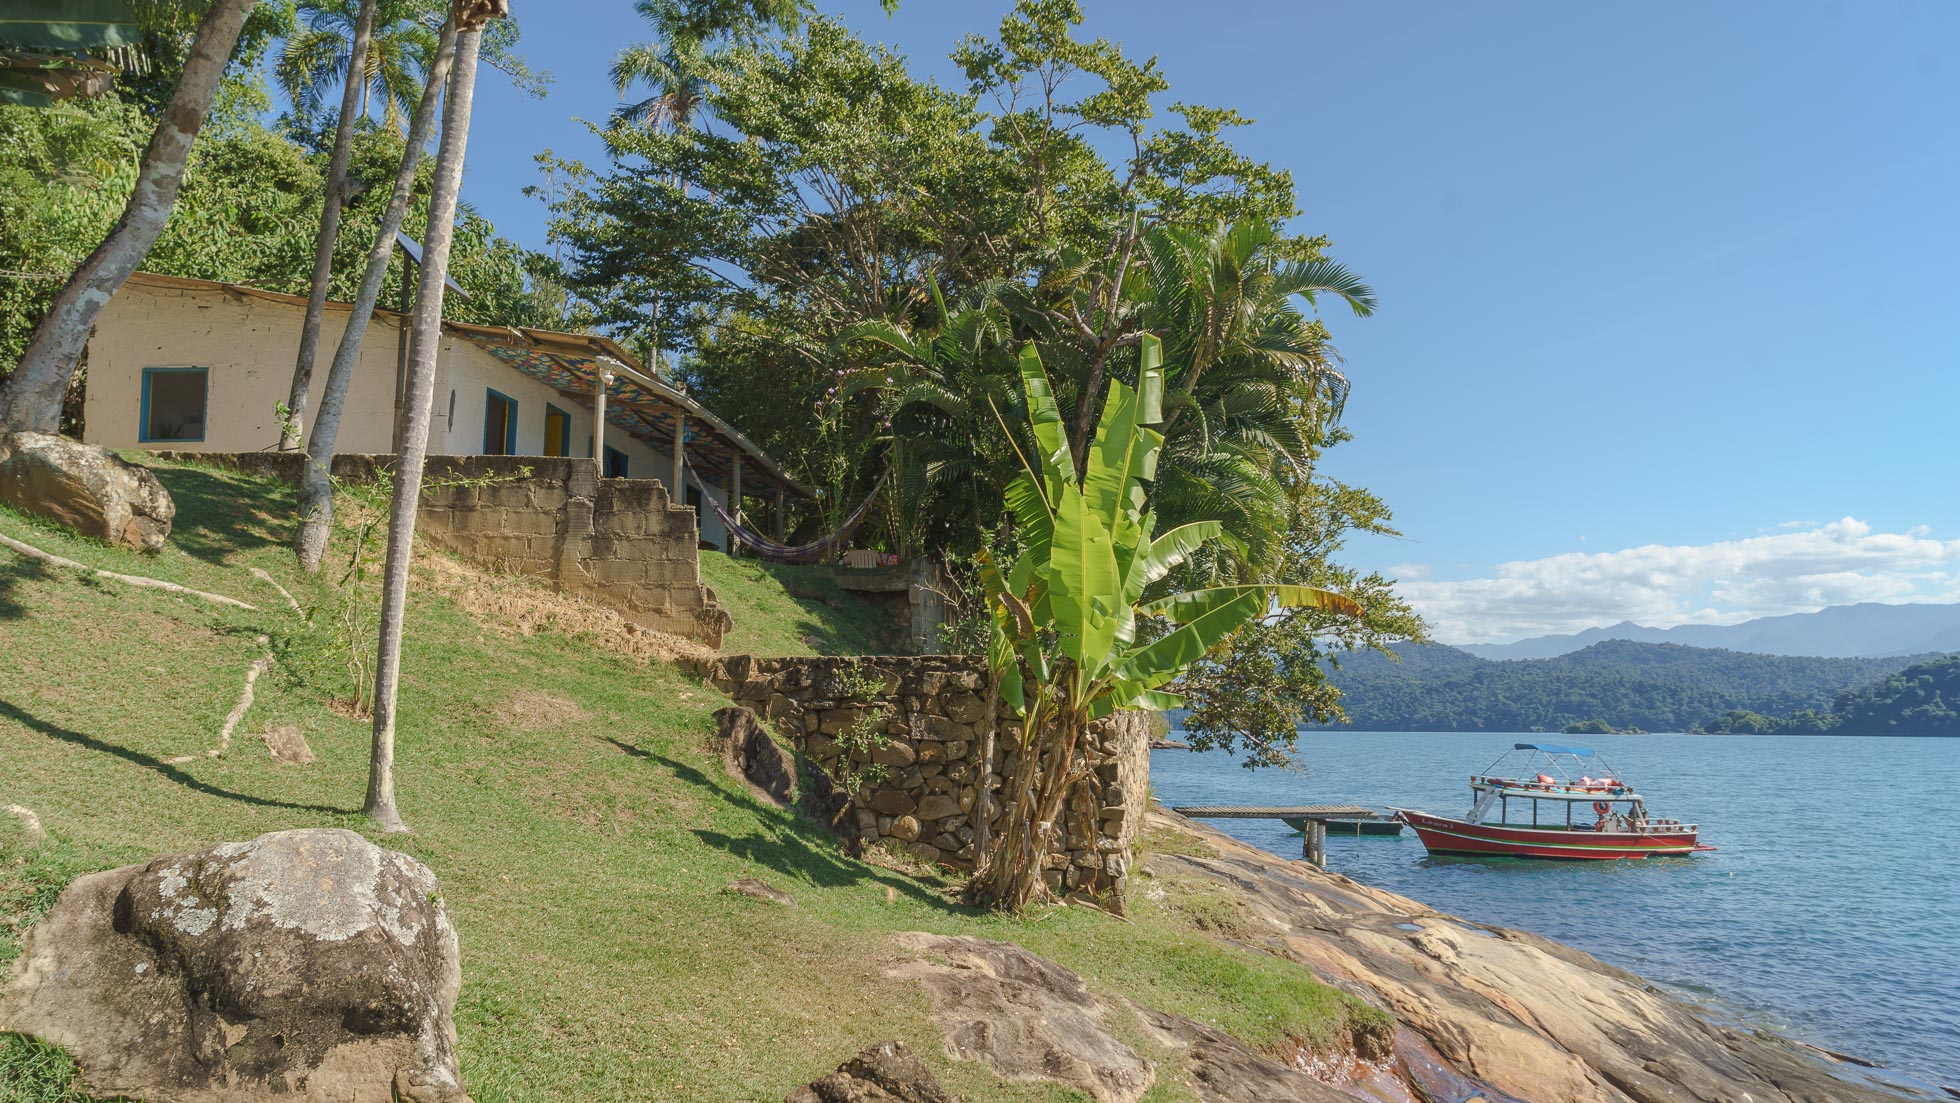 Lesvoyageuses-paraty-bresil-guide-voyage-71